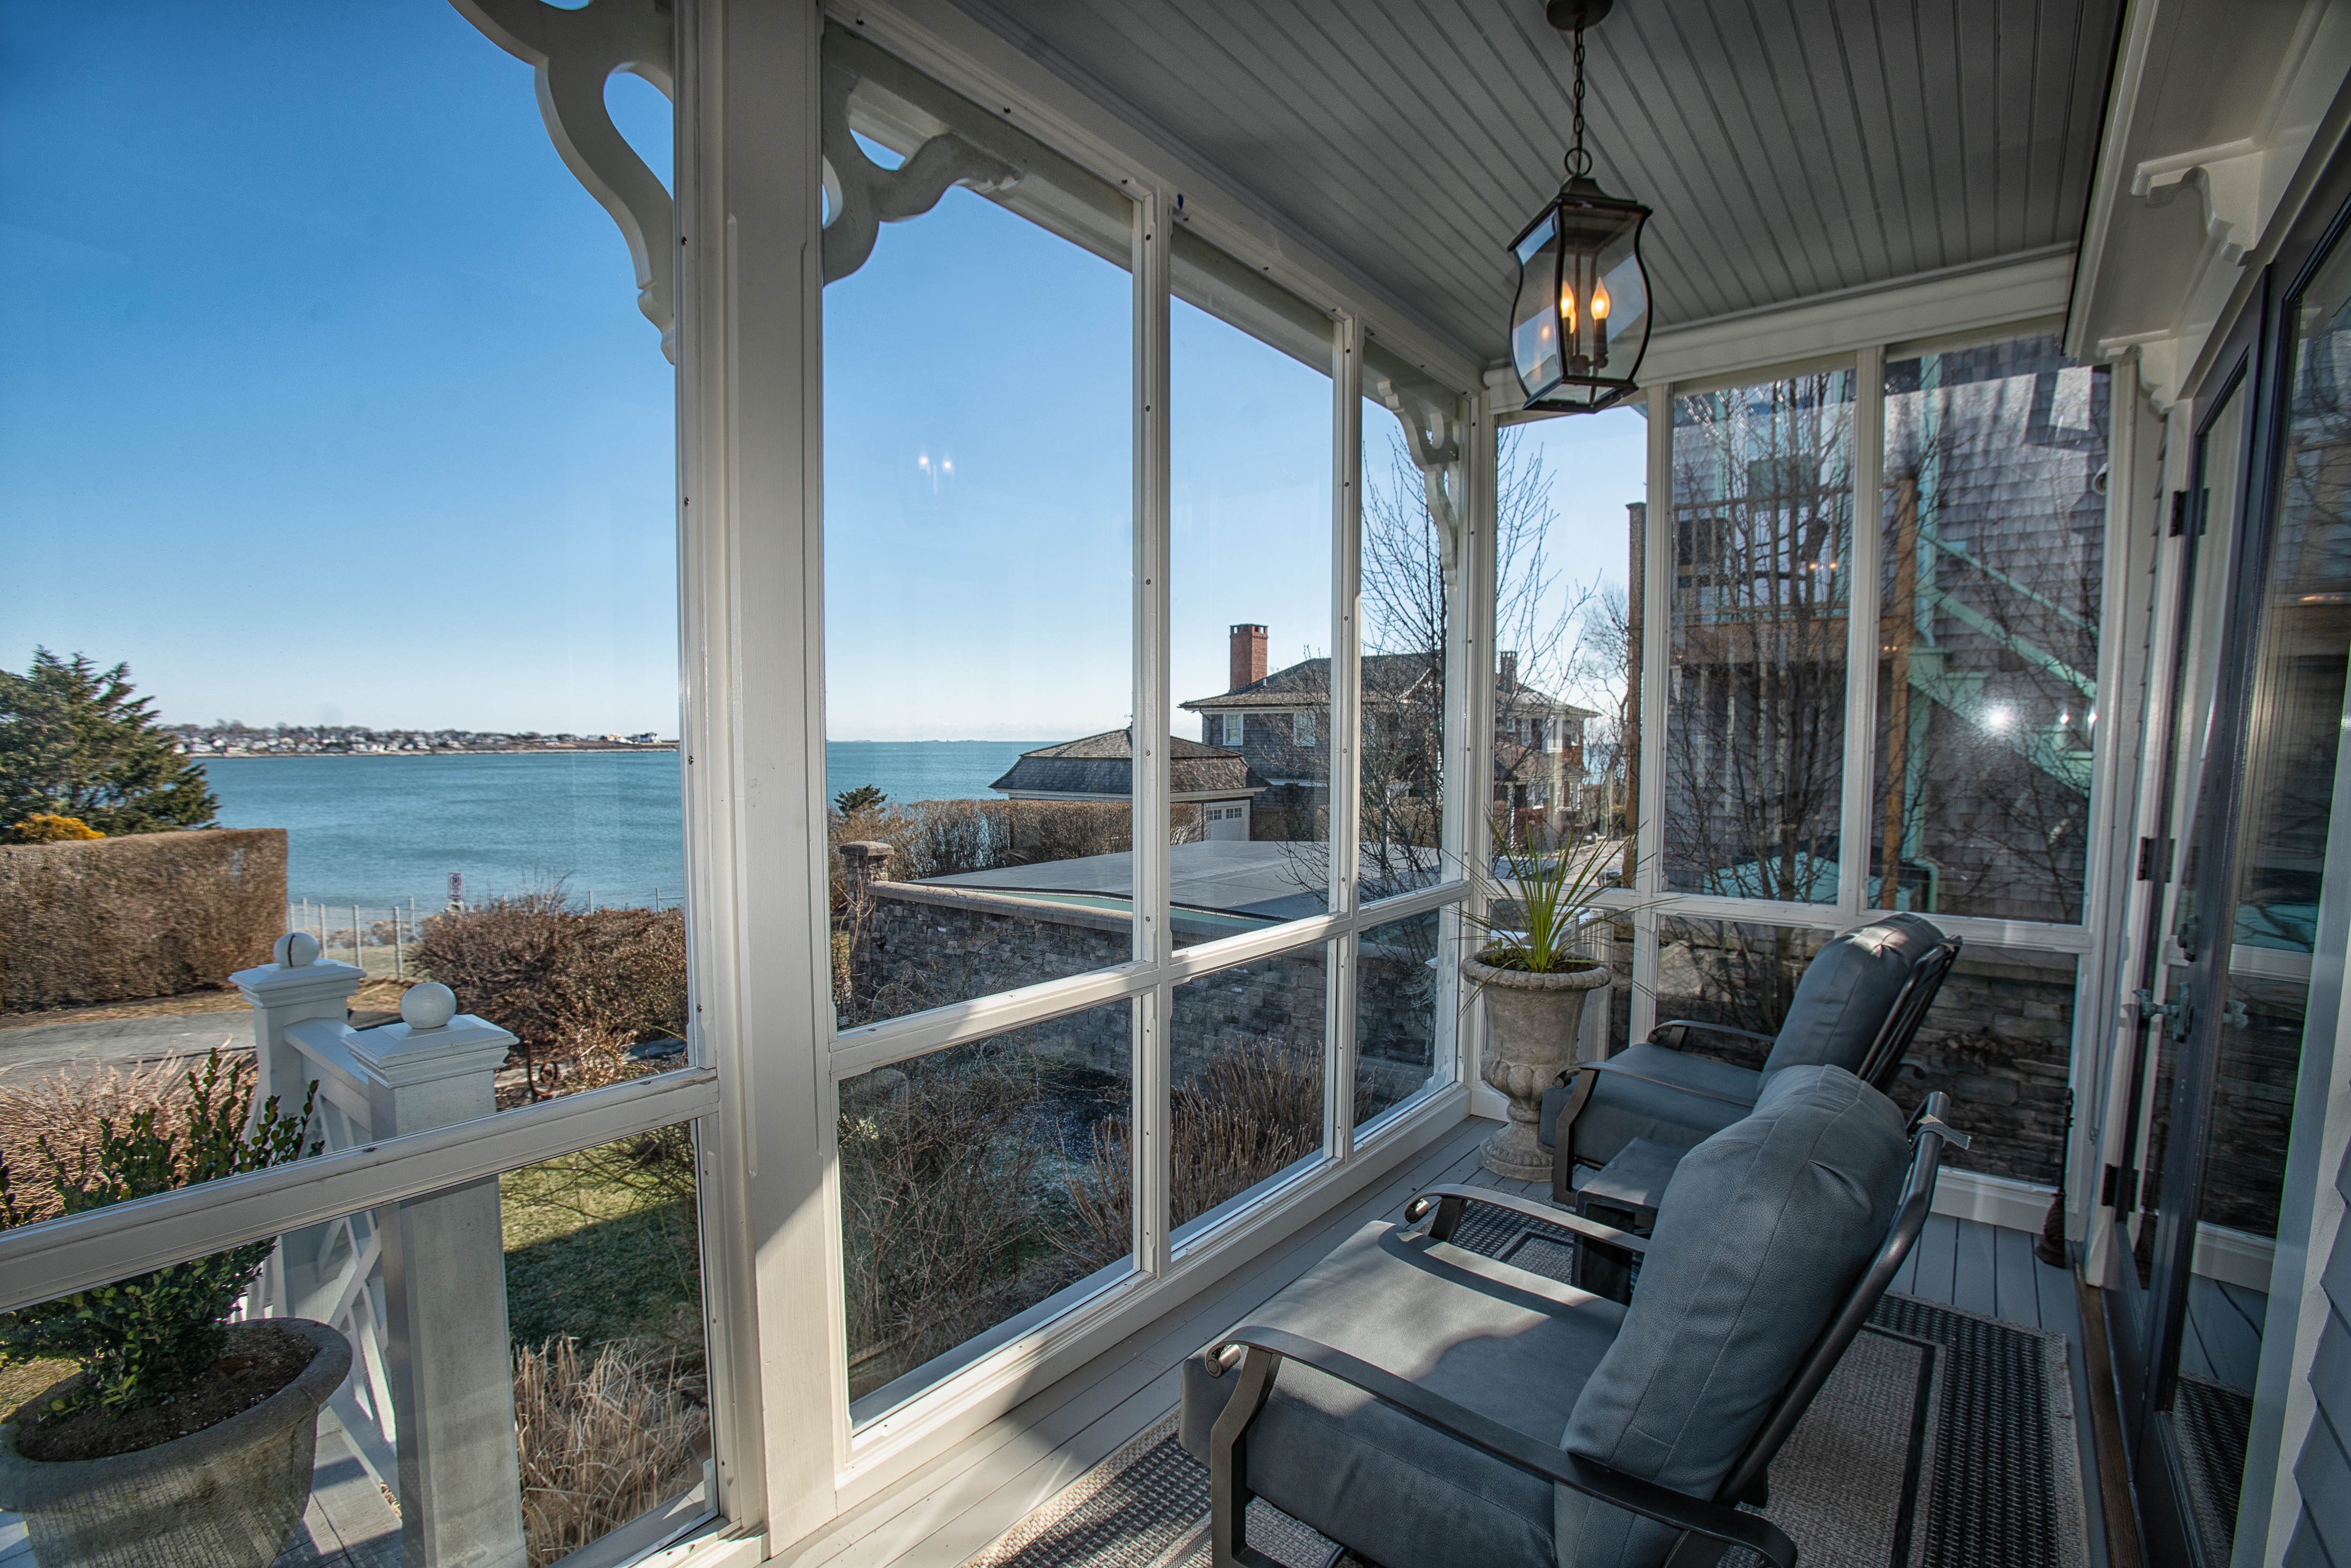 THE PROPERTY FEATURES views of the Atlantic Ocean. / COURTESY MOTT & CHACE SOTHEBY'S INTERNATIONAL REALTY